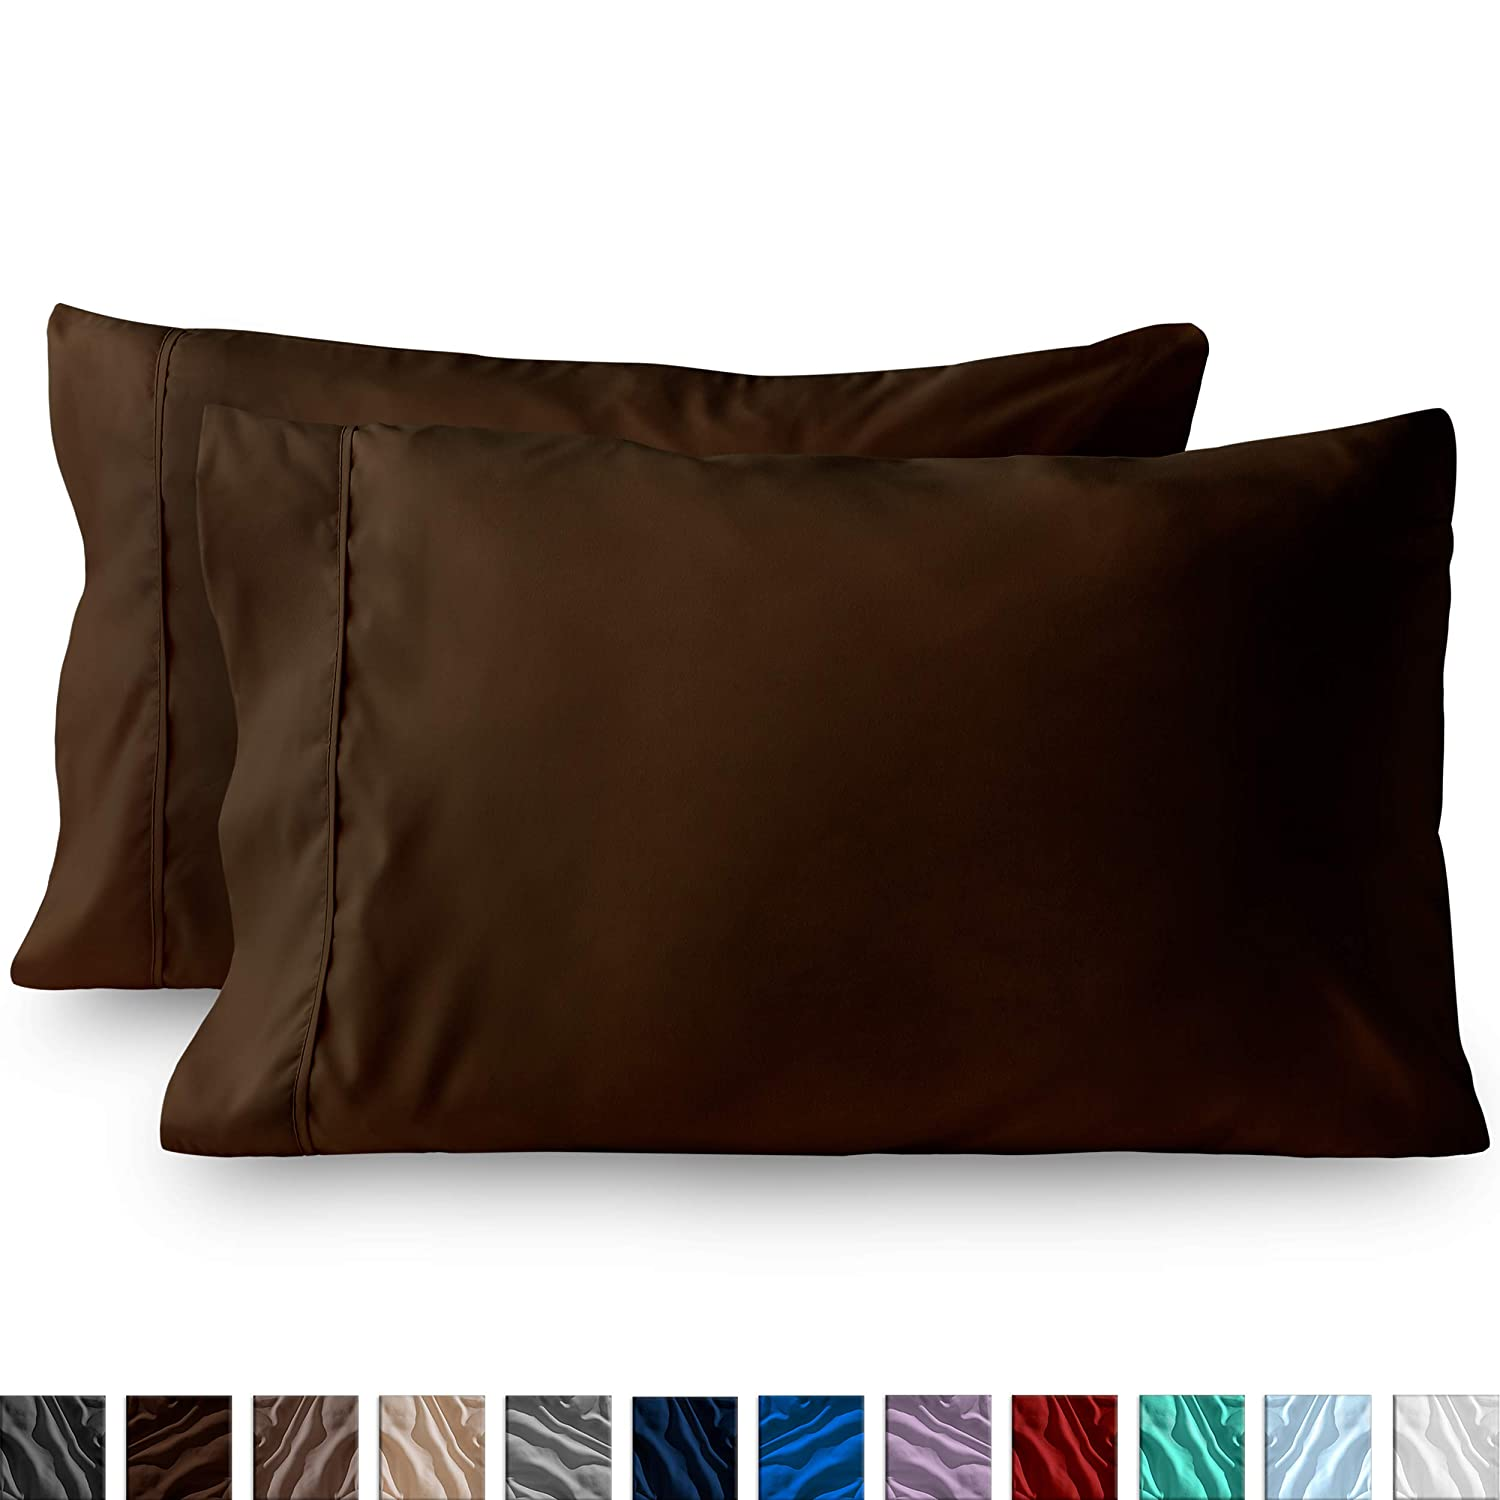 Bare Home Premium 1800 Ultra-Soft Microfiber Pillowcase Set - Double Brushed - Hypoallergenic - Wrinkle Resistant (Standard Pillowcase Set of 2, Cocoa)